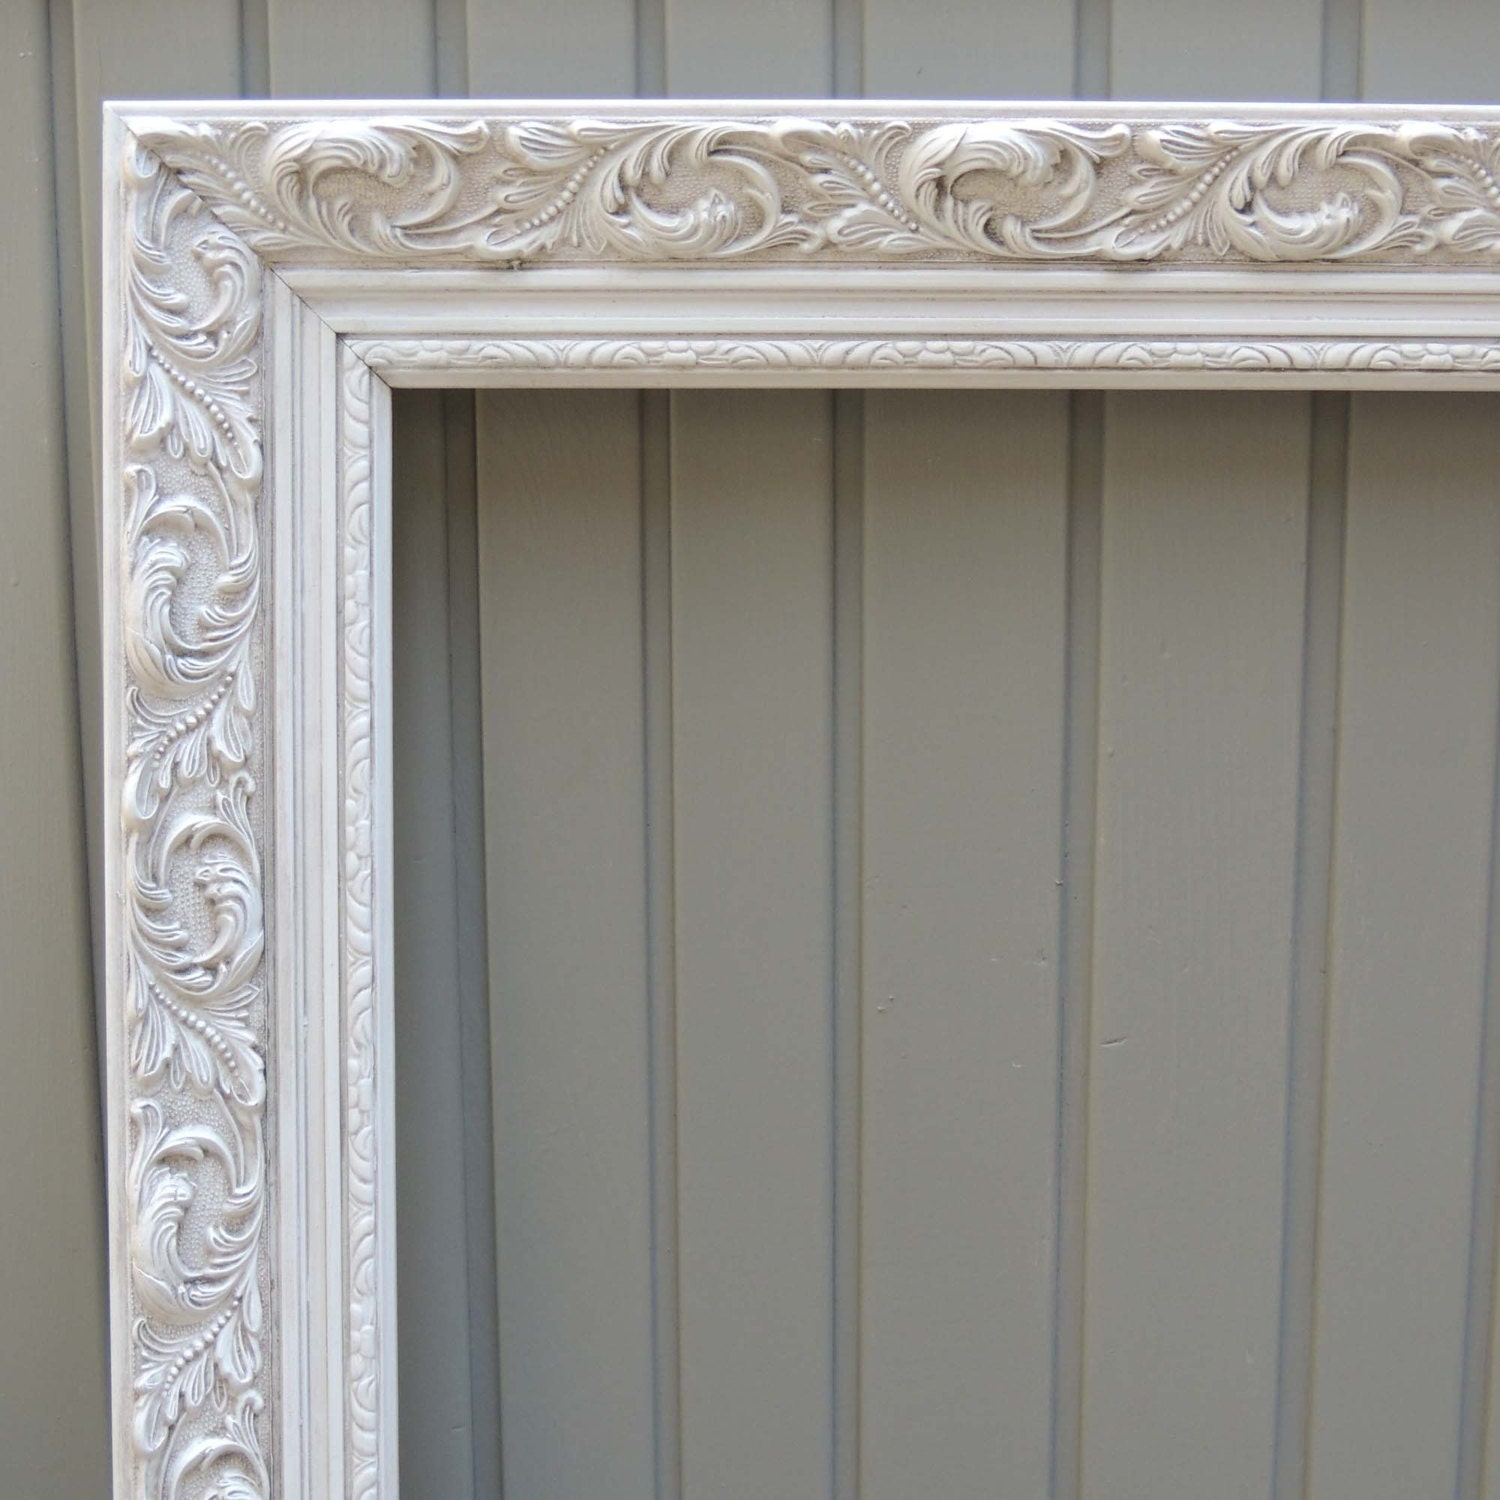 white picture frames 24x36 picture frame ornate picture. Black Bedroom Furniture Sets. Home Design Ideas